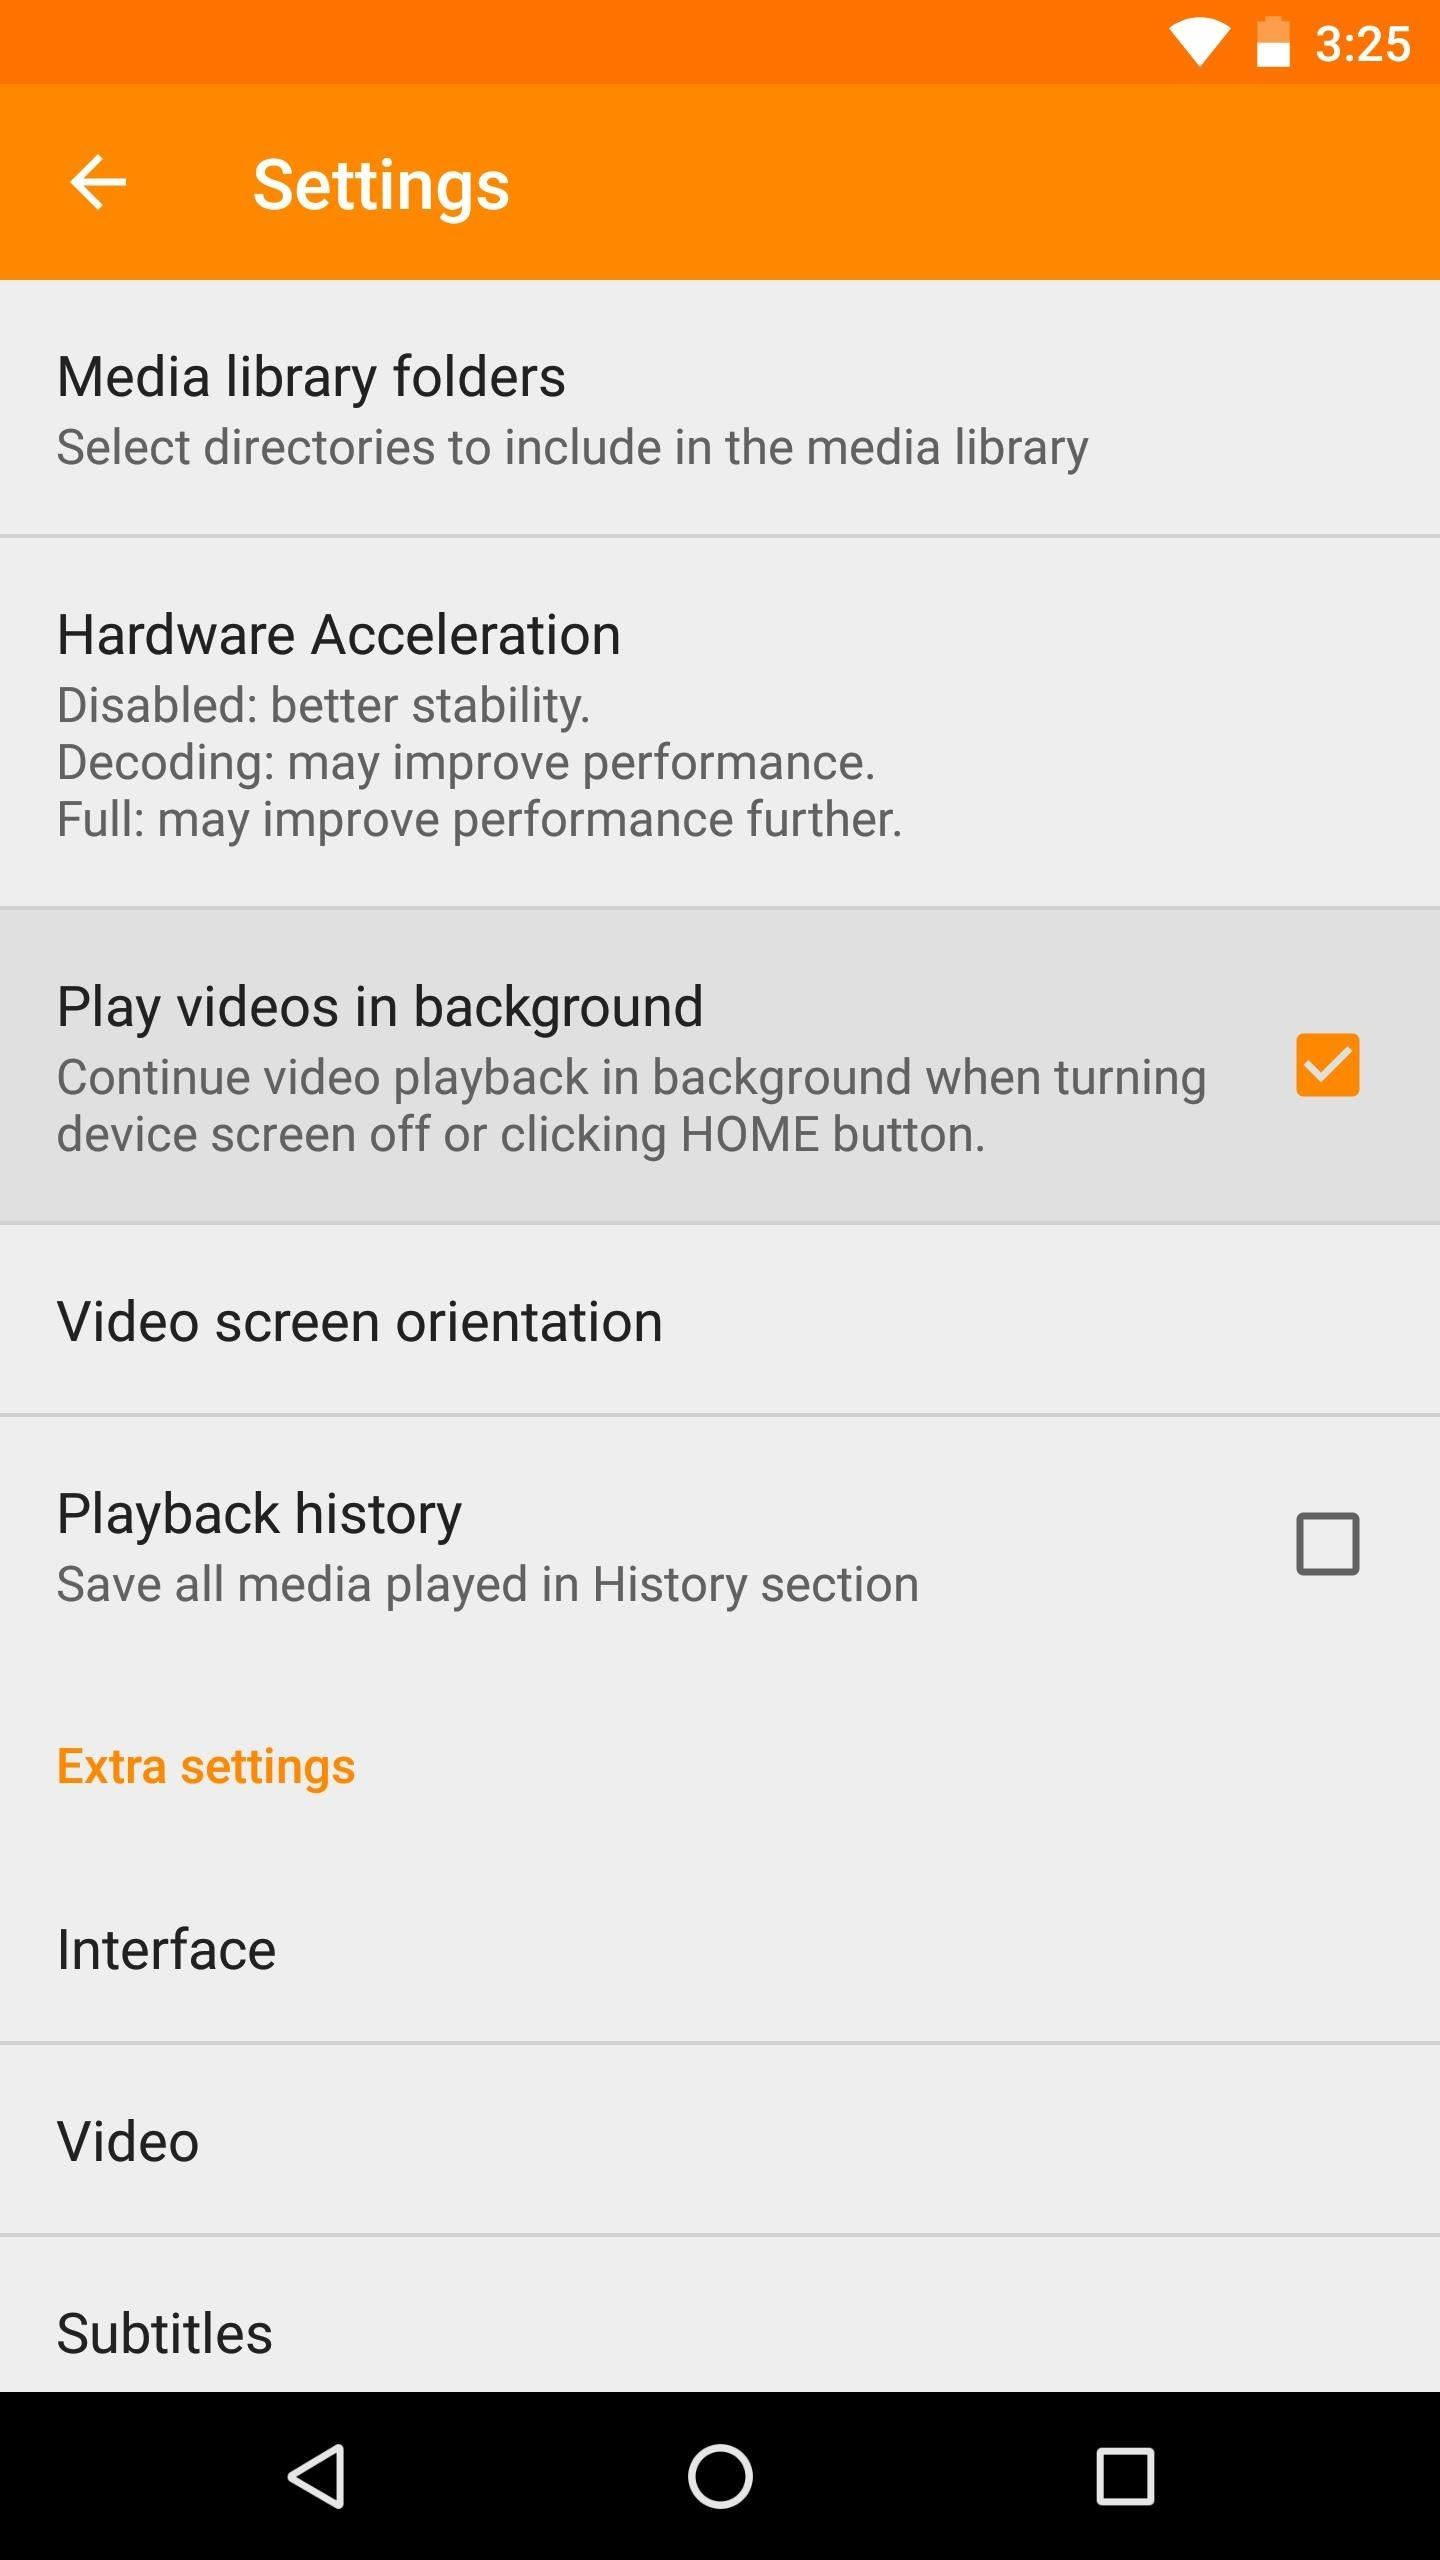 Use VLC's Picture-in-Picture Mode on Android Oreo to Watch Videos While Multitasking